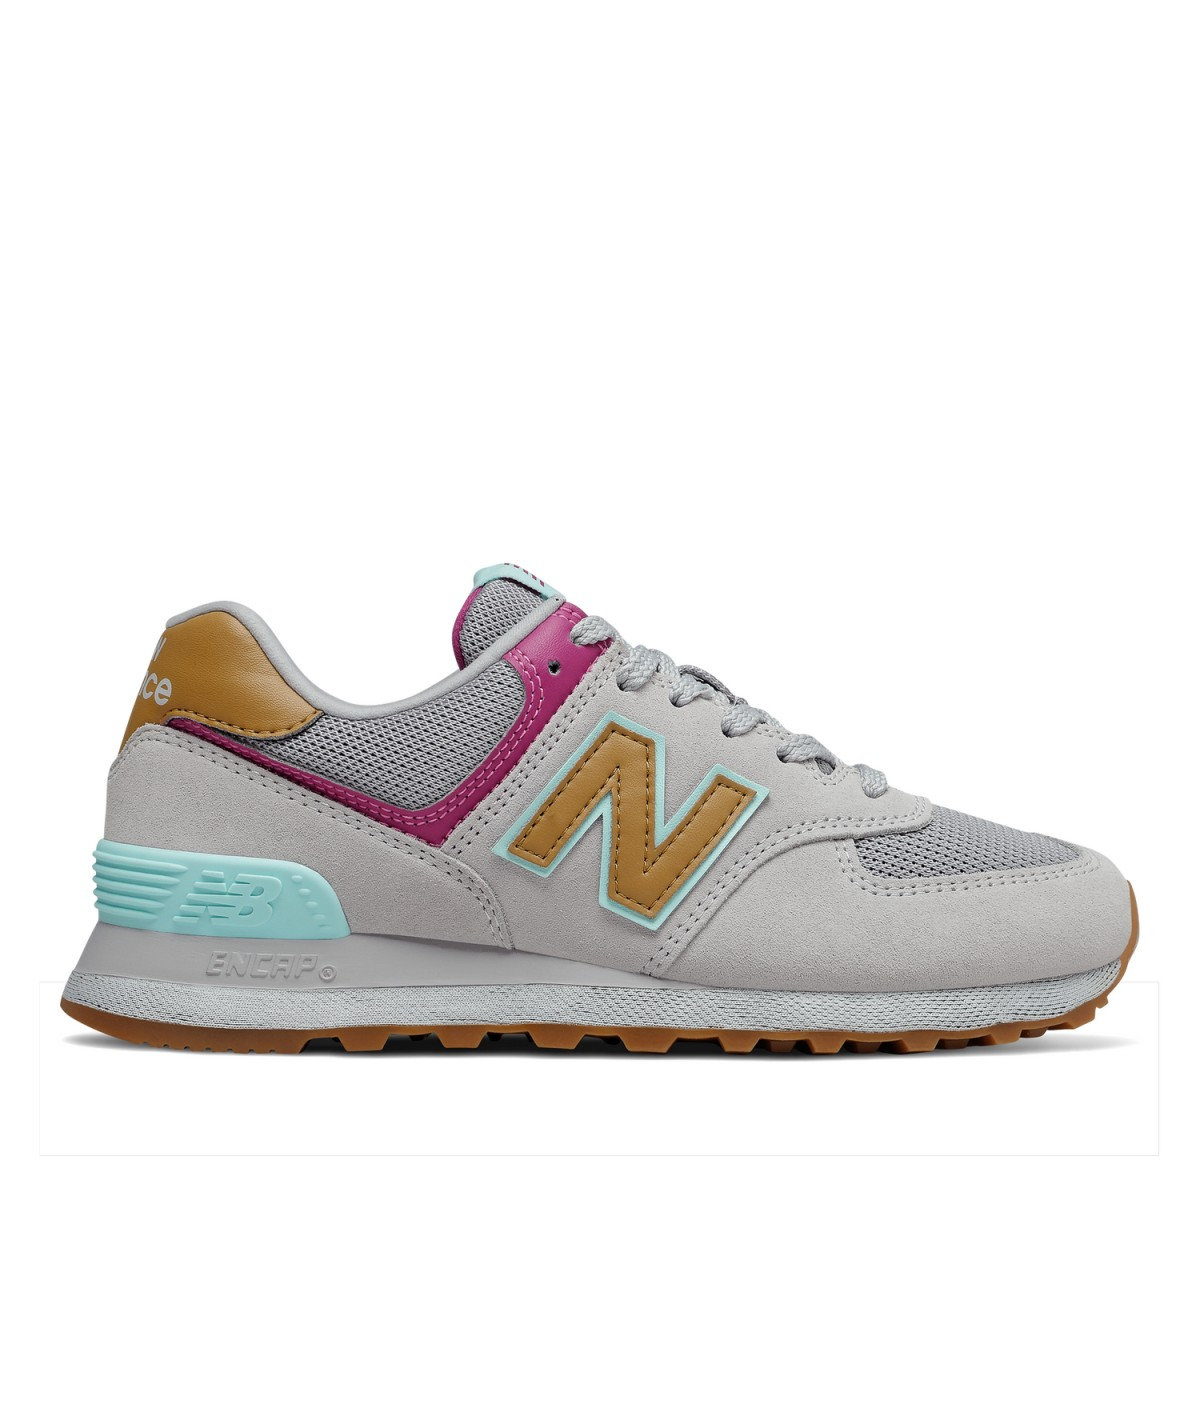 New Balance 574 ATA sneaker gray woman